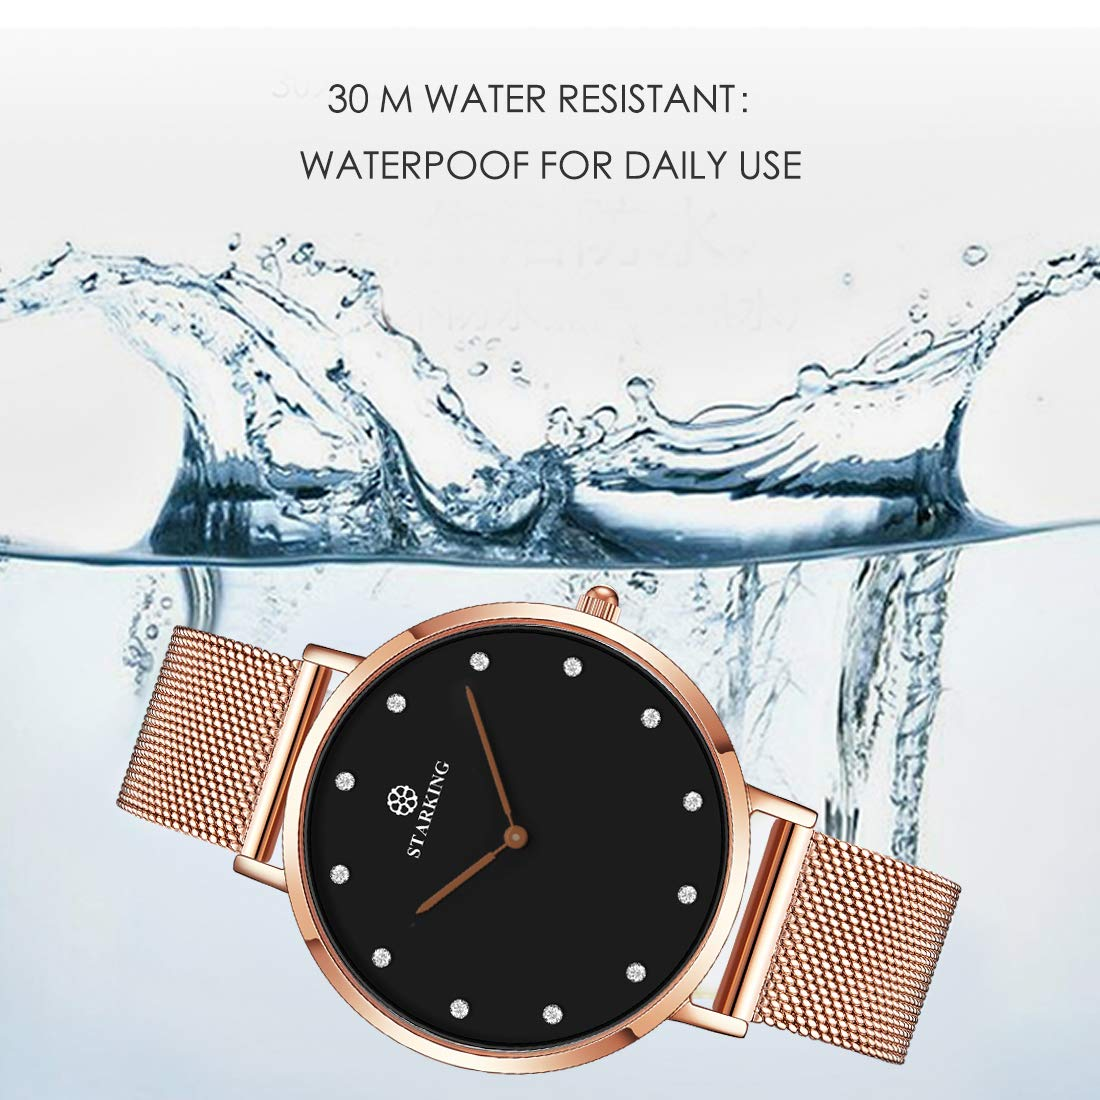 Amazon.com: STARKING Womens Minimalist Ultra Thin Rose Gold Watch Black BL0997 Analog Japanese Quartz Stainless Steel Mesh Watch …: Watches